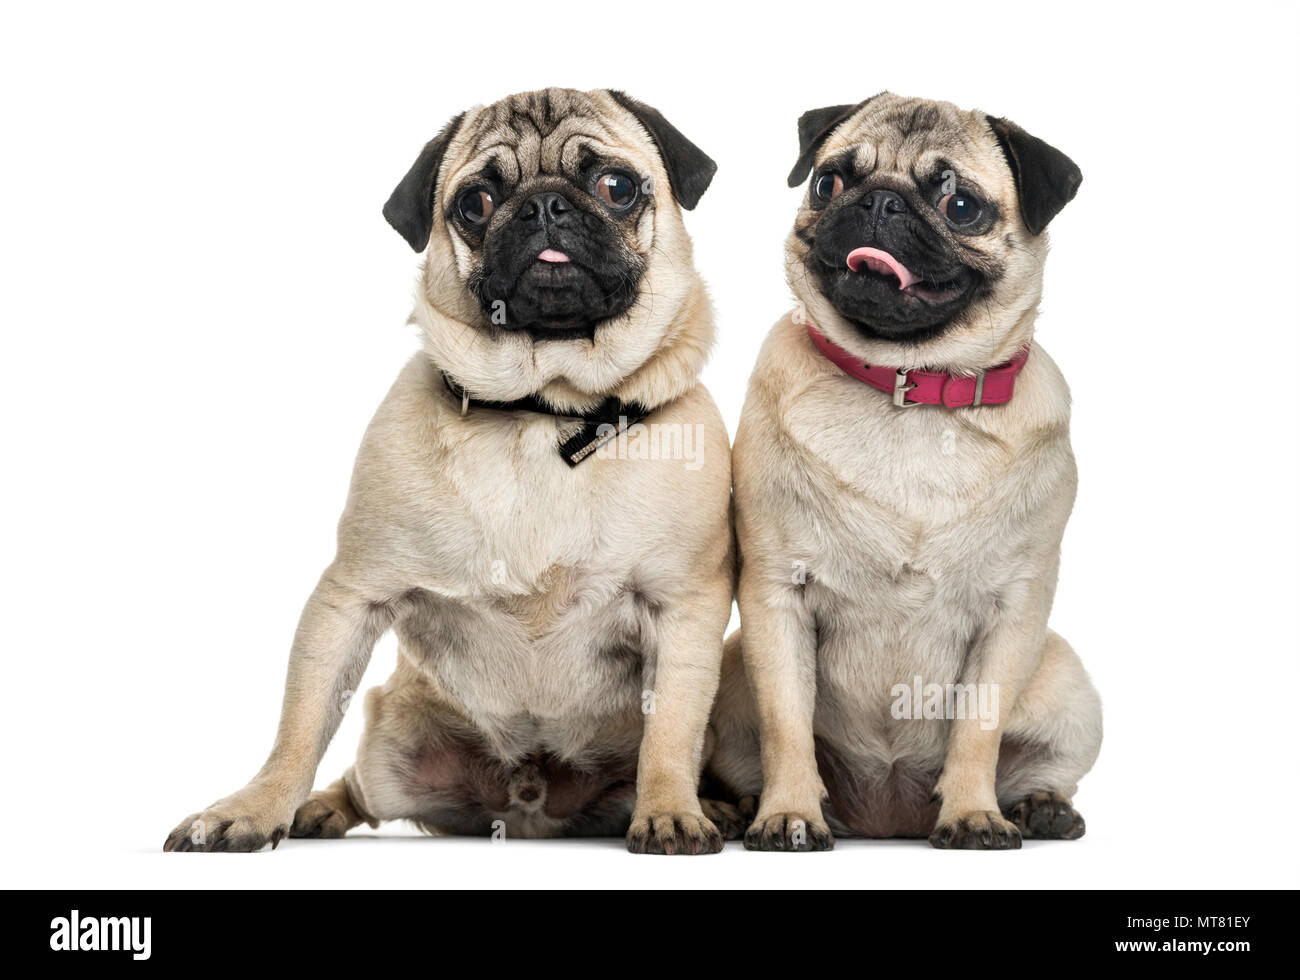 Pug dogs sitting together against white background - Stock Image